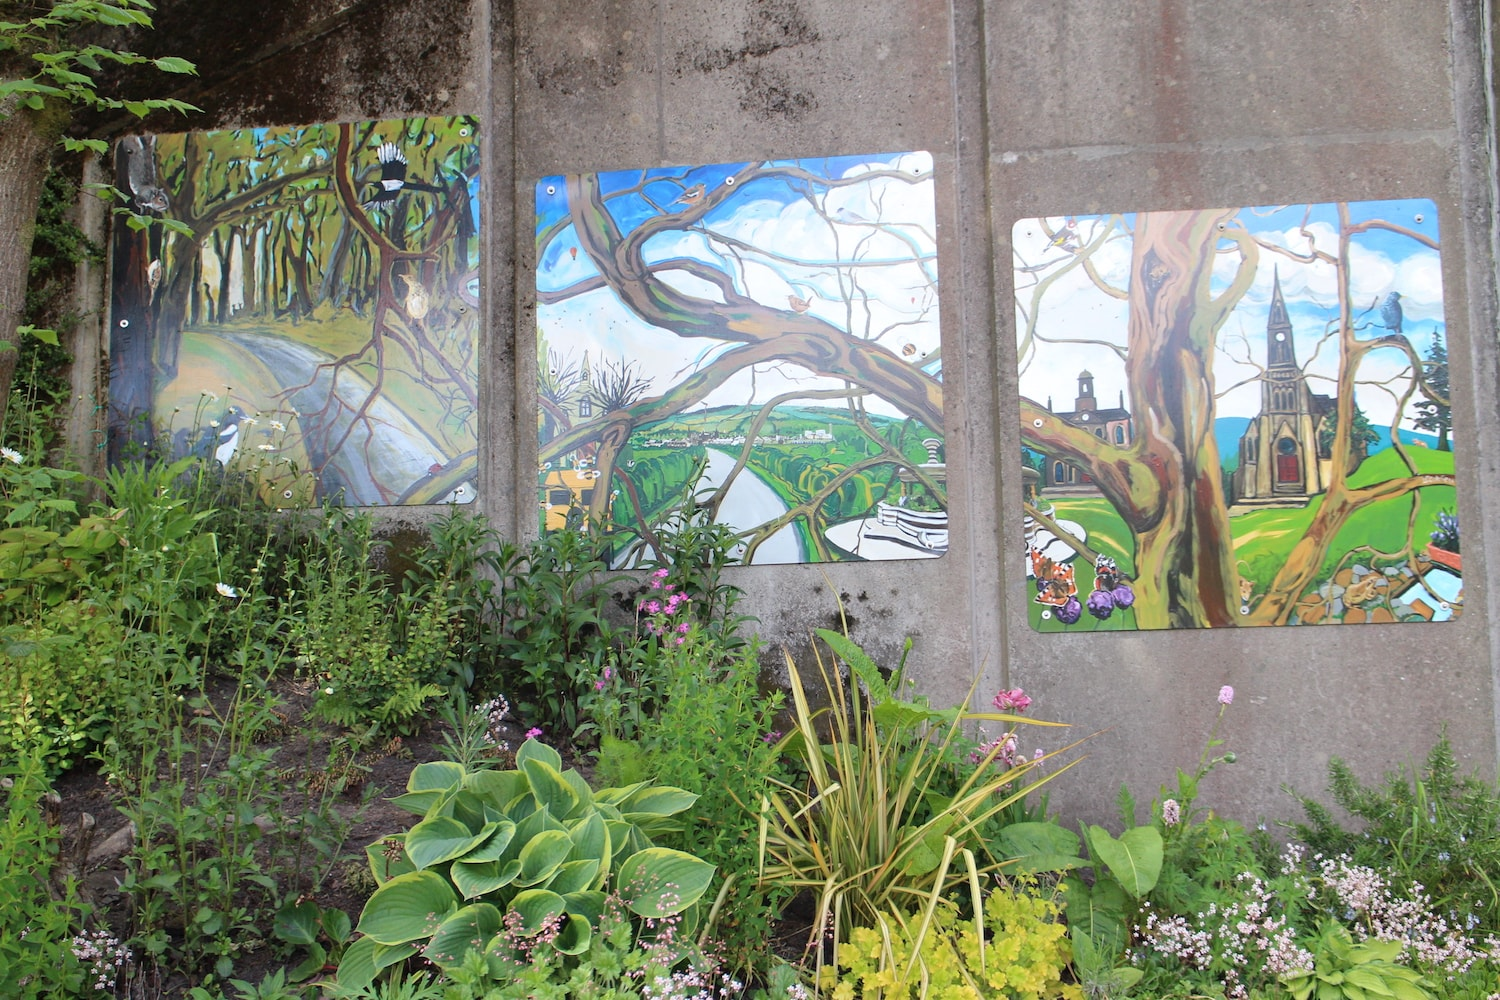 Artwork at Dalry railway station showcasing the nature of the town and district by artist Leo du Feu